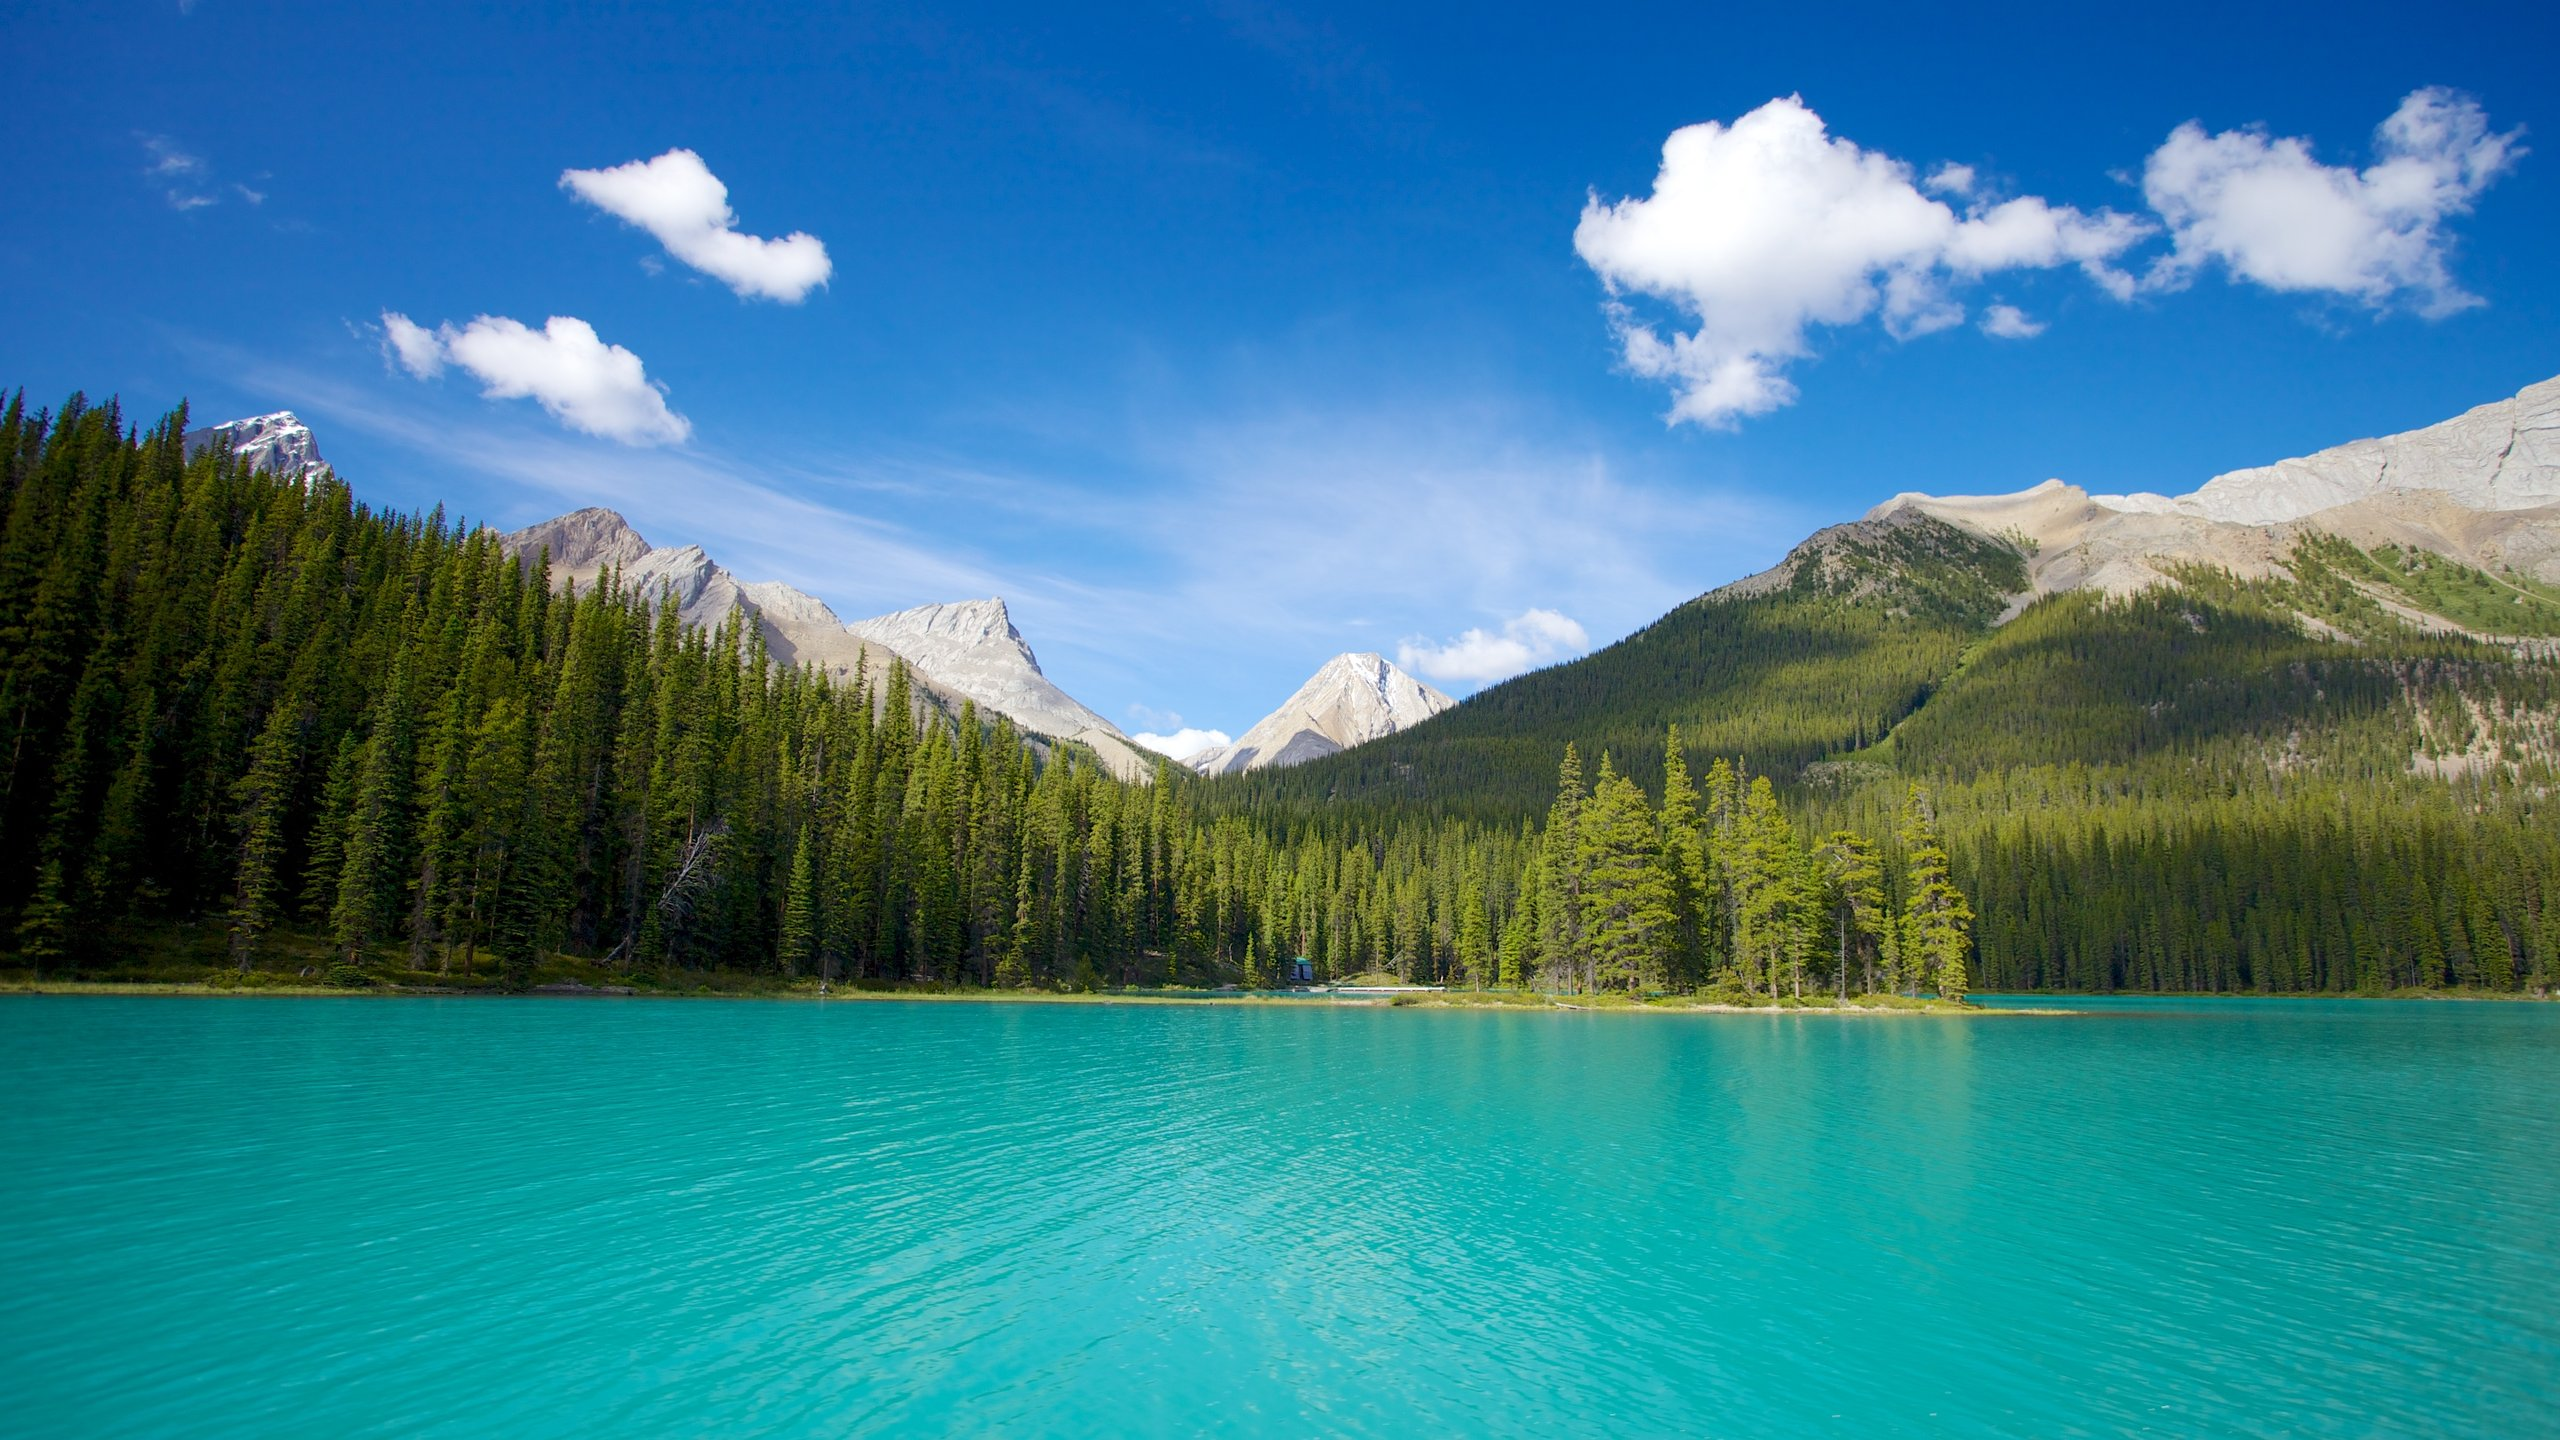 Its sky-blue waters, glacial mountains, and Spirit Island make this one of the Canadian Rockies' most iconic locations for a fishing or boat trip.